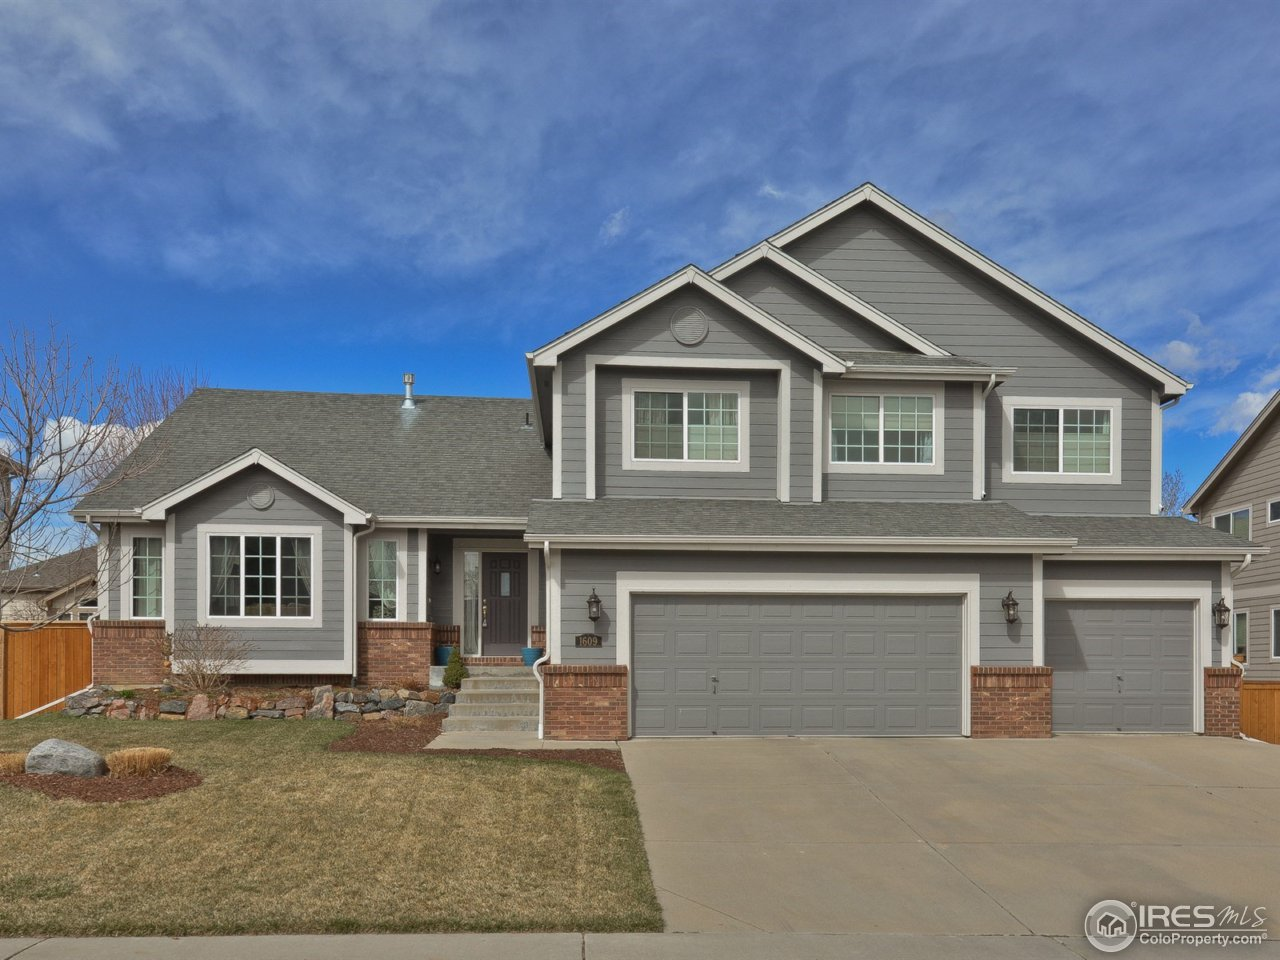 1609 Hallet Peak Dr, Longmont CO 80503